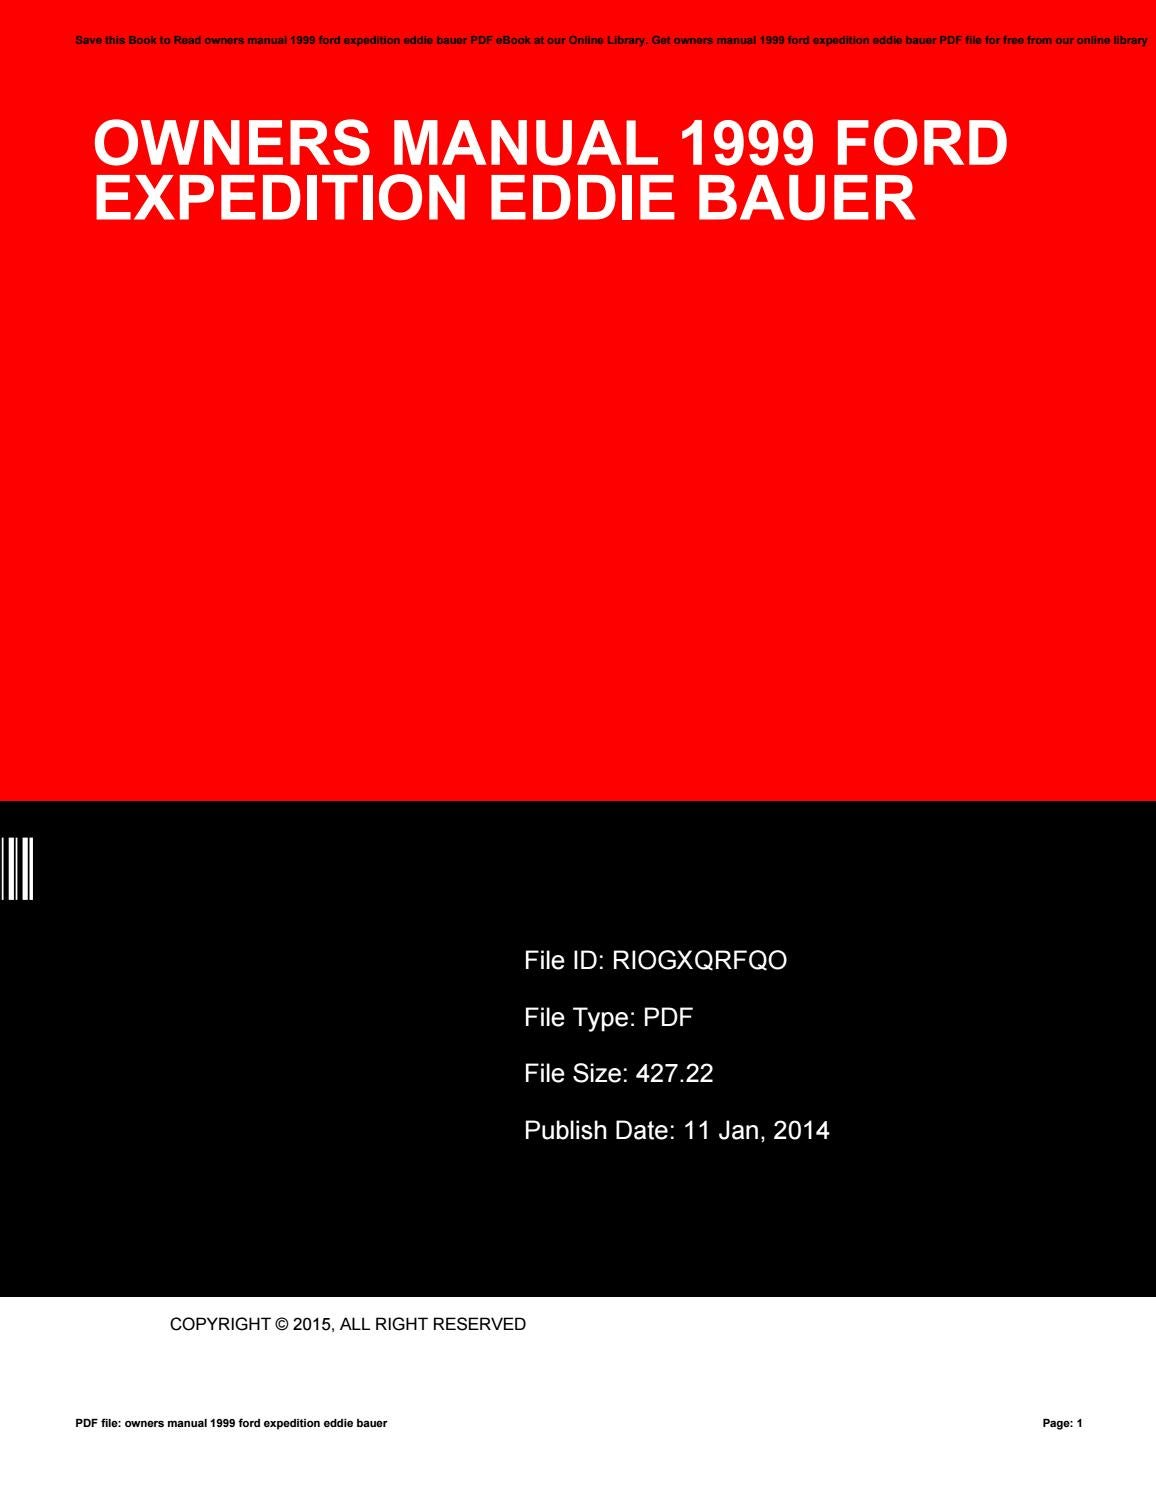 Owners manual 1999 ford expedition eddie bauer by SusanSchuman3955 - issuu